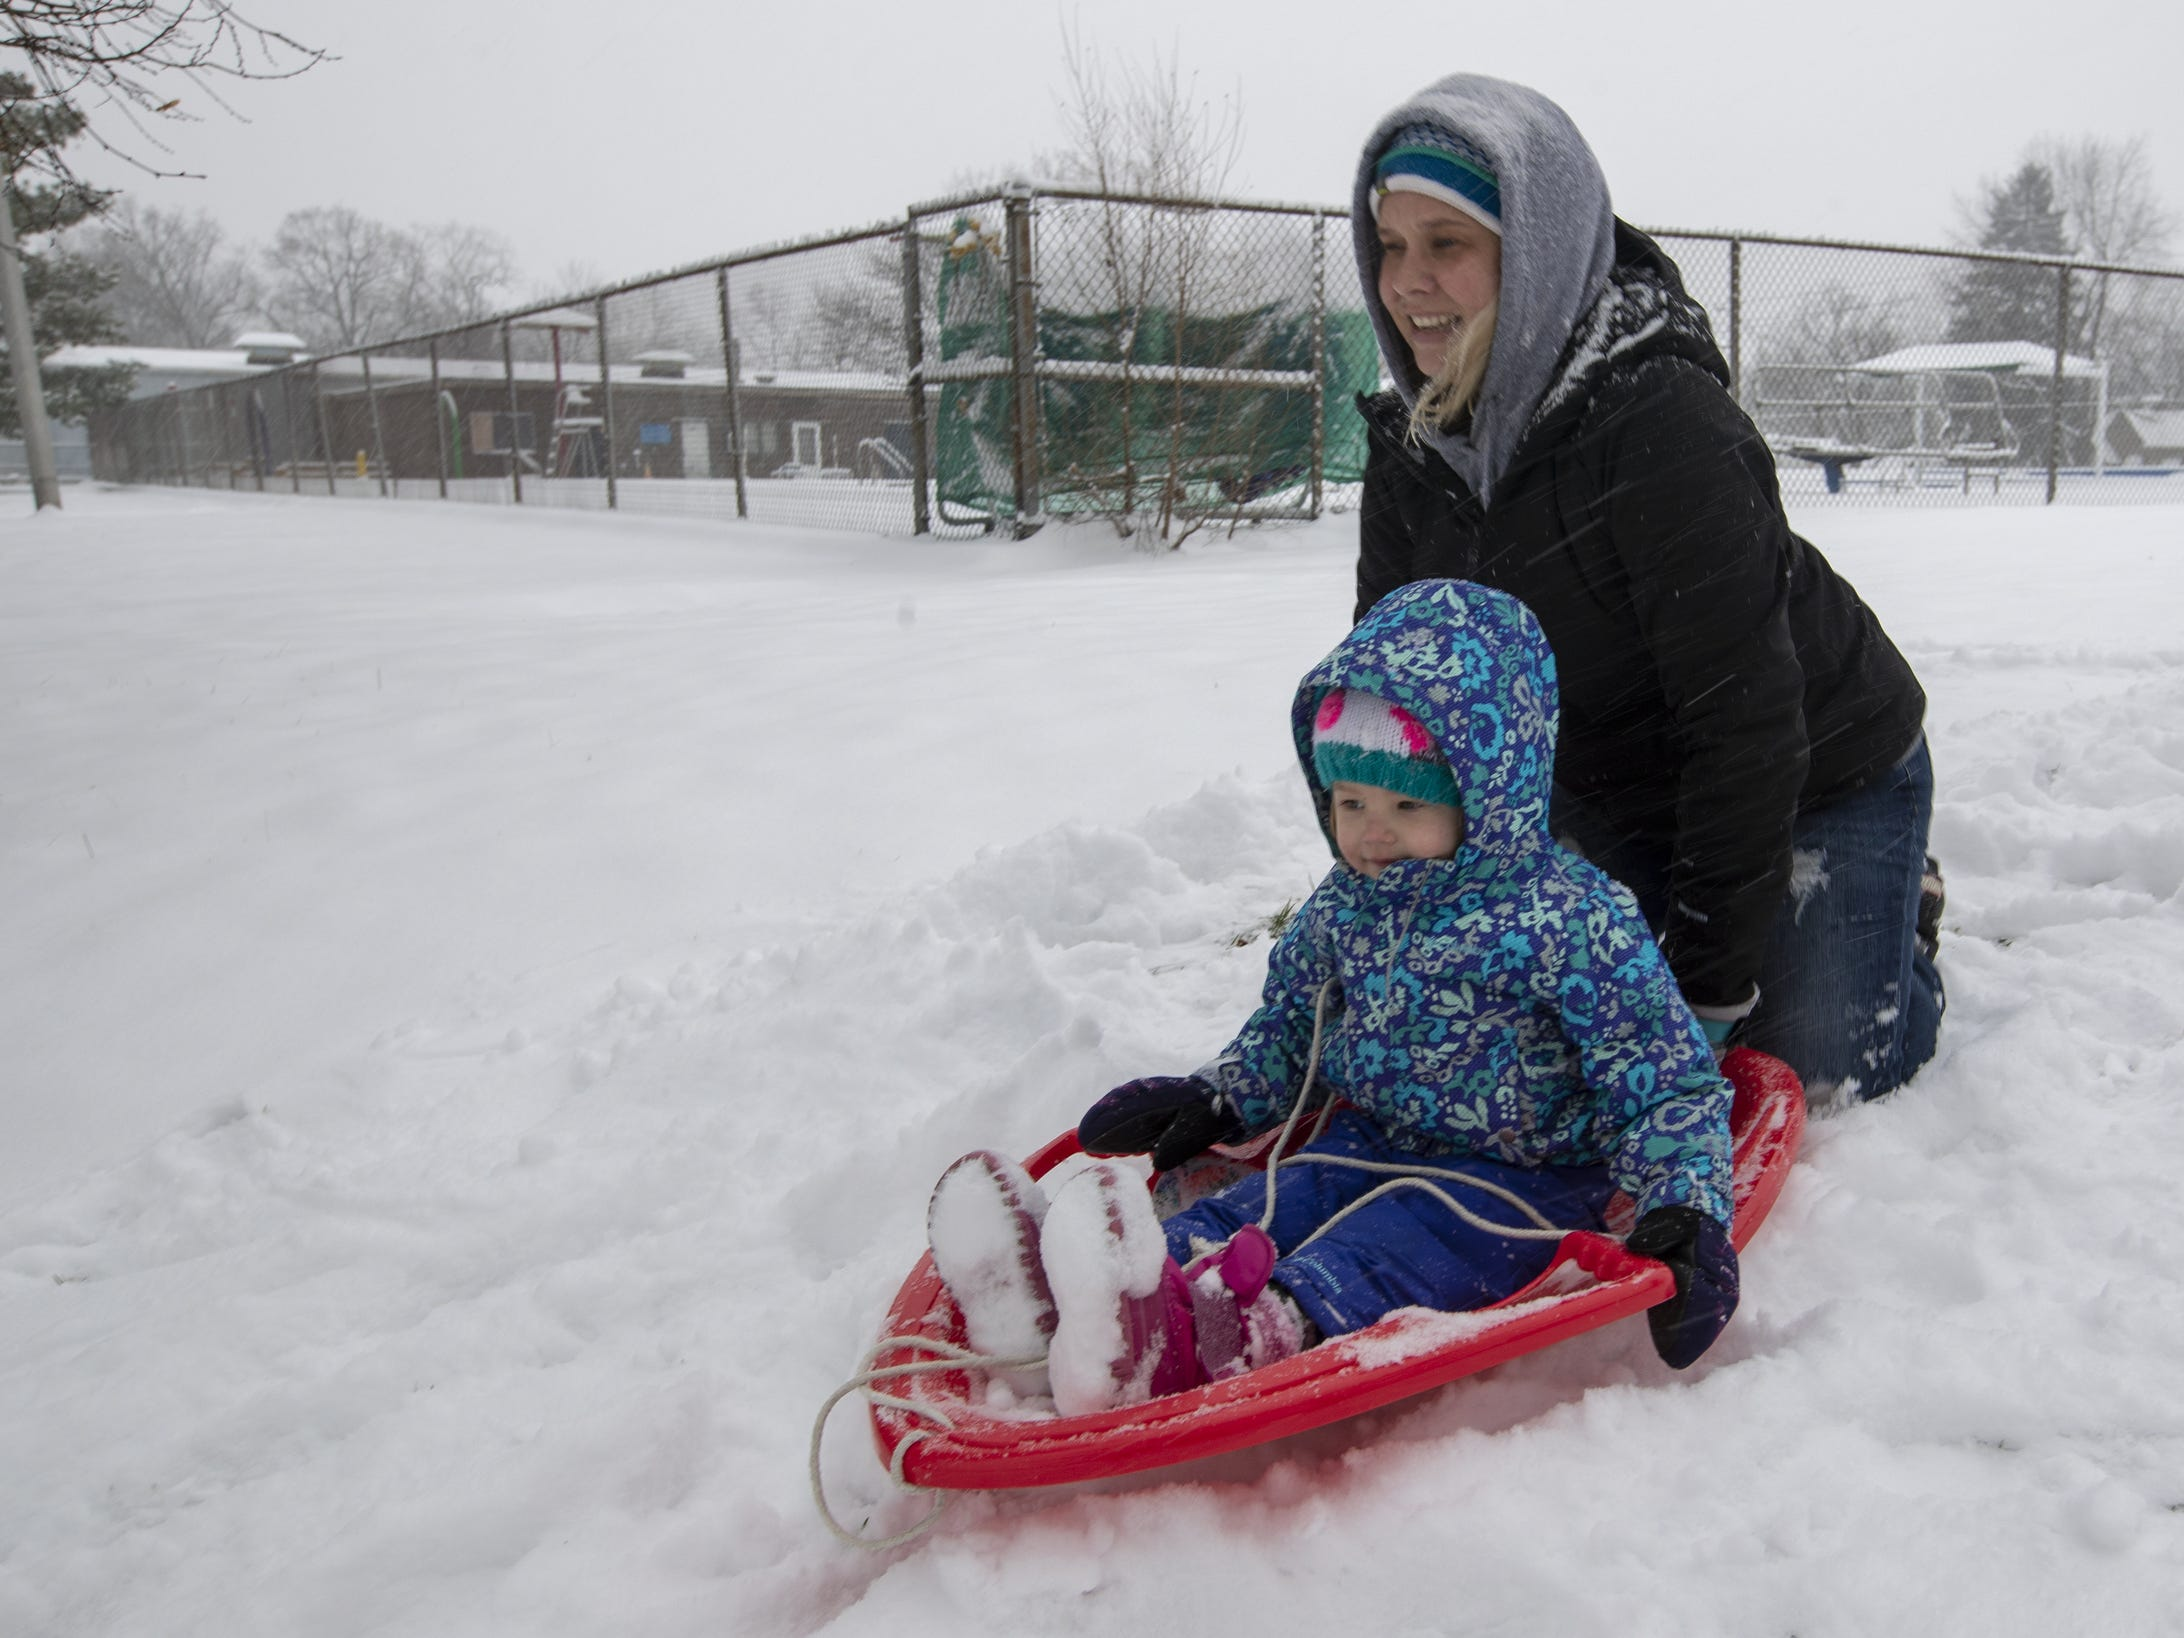 Libby Duggan pushes daughter Lucy Duggan, 3, as they sled at Ellenberger Park on a day where 5-7 inches of snow is expected to fall in Central Indiana, Indianapolis, Saturday, Jan. 12, 2019.